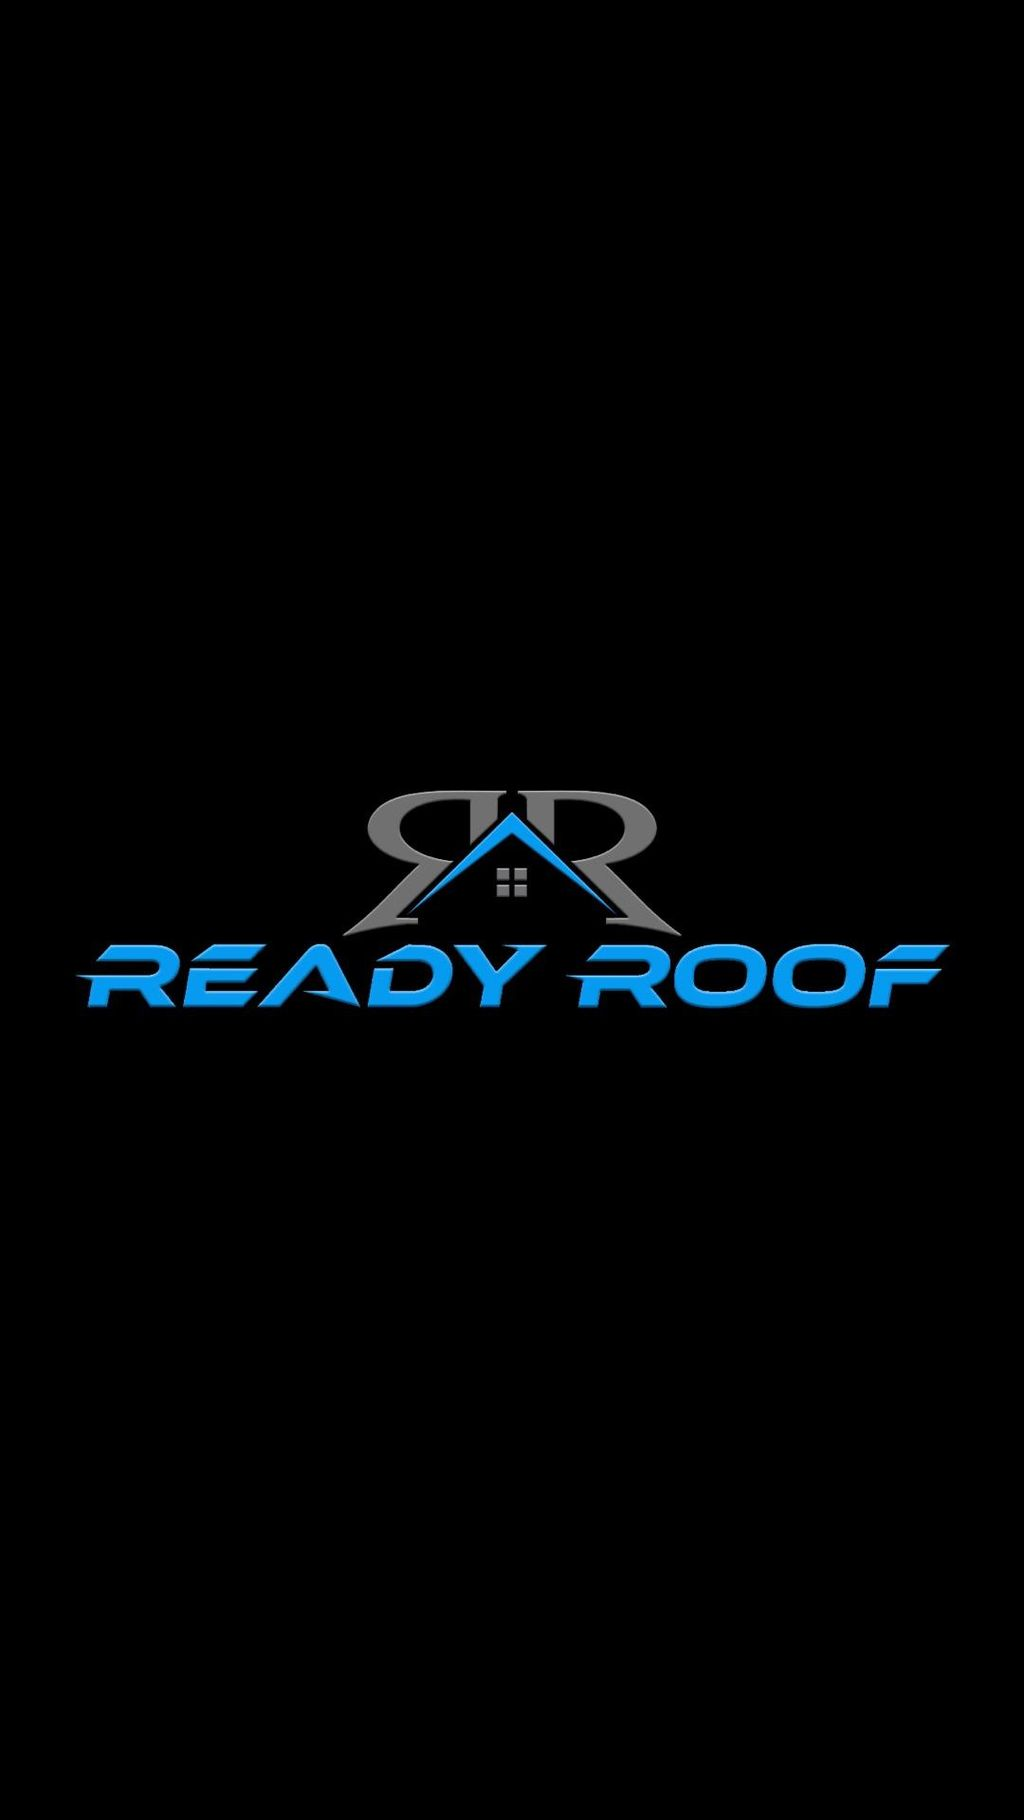 Ready Roof Exteriors